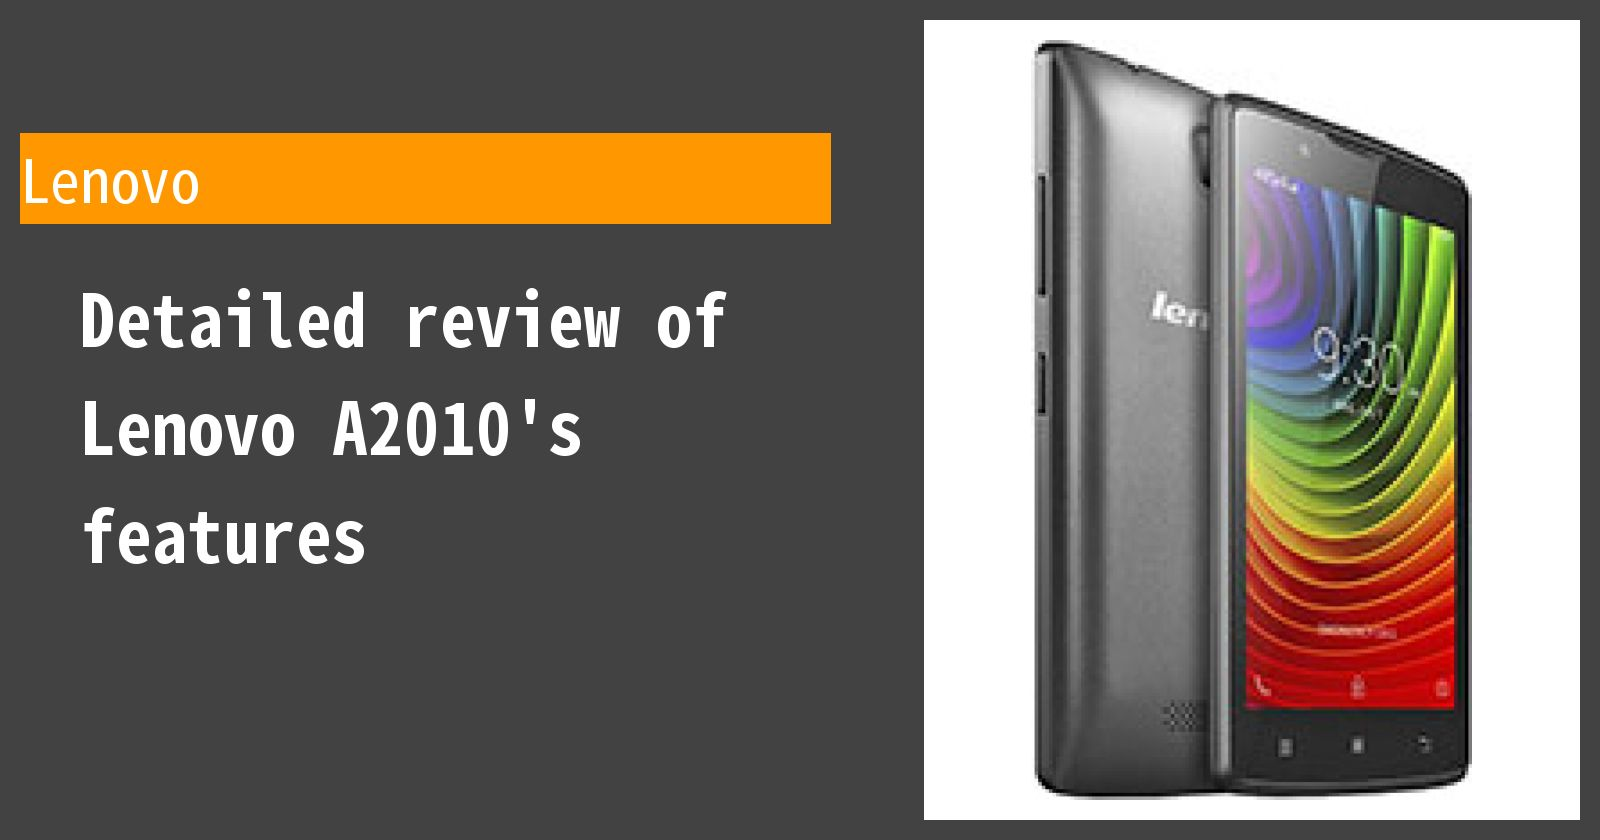 Detailed review of Lenovo A2010's features